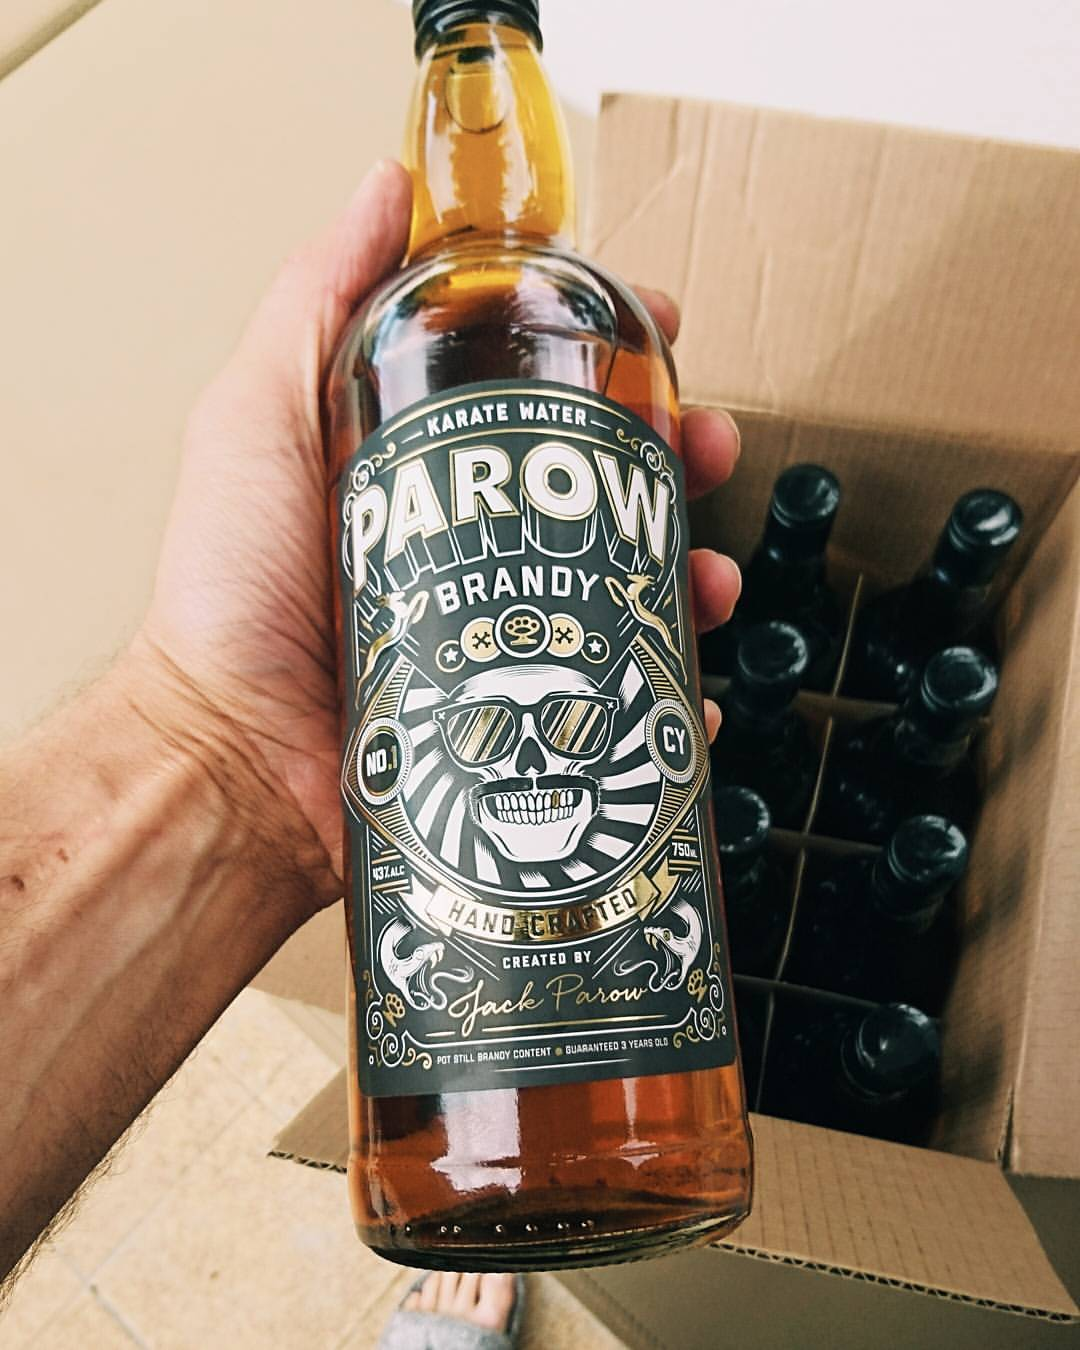 Musician Jack Parow releases his own brandy – Parow Brandy photo